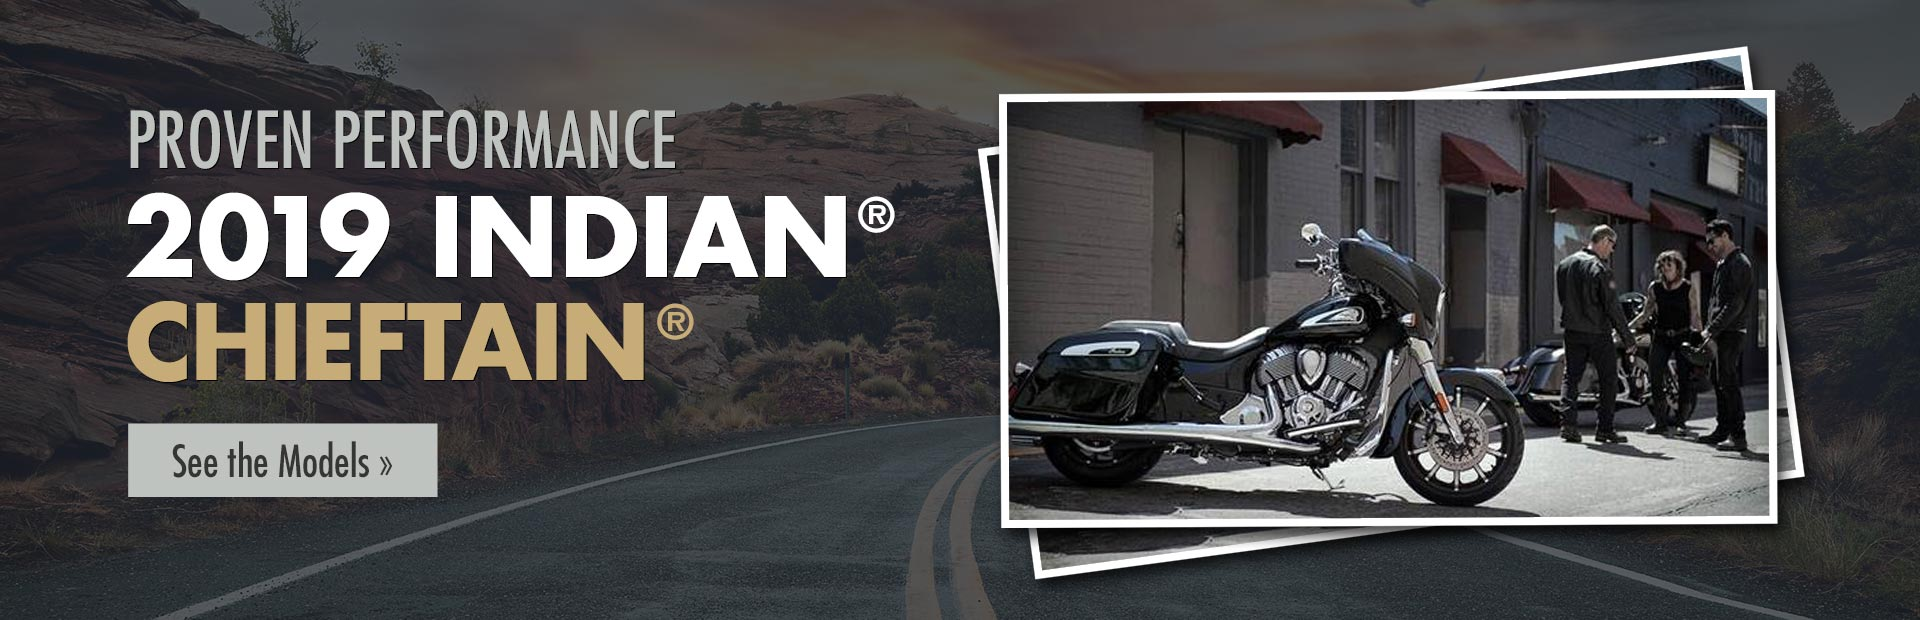 2019 Indian® Chieftain®: Click here to view the models.